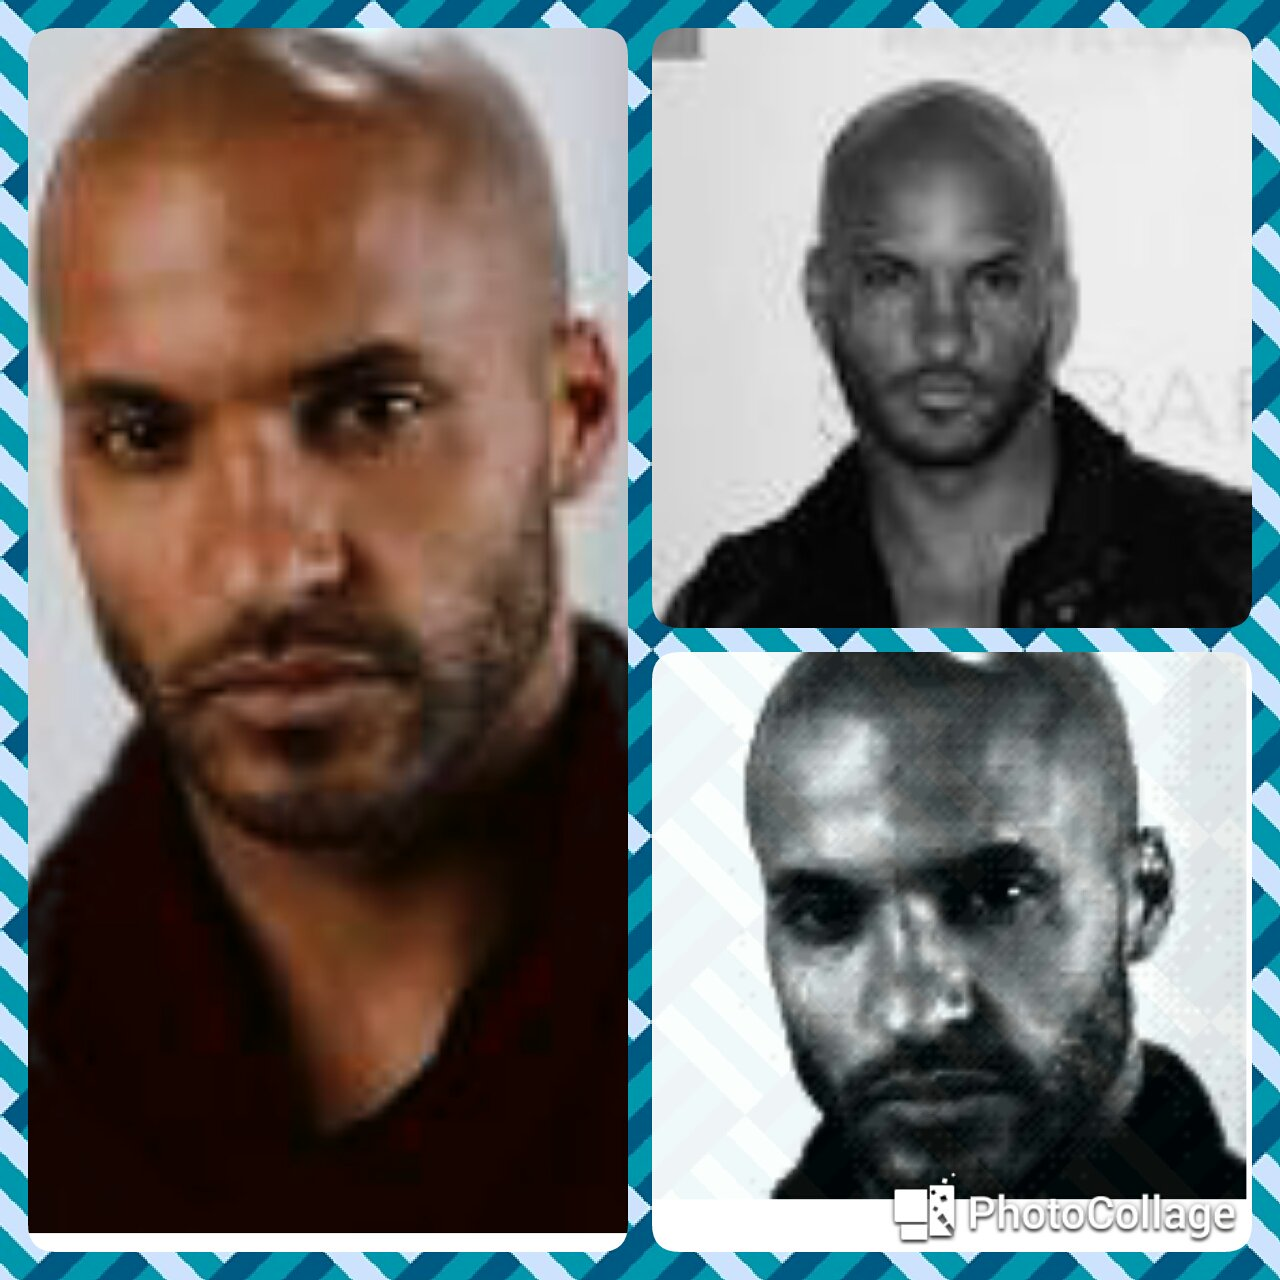 RT @Kit_Shadow_Aero: Collage for @MrRickyWhittle. Have a nice day! https://t.co/2qB89On4aO